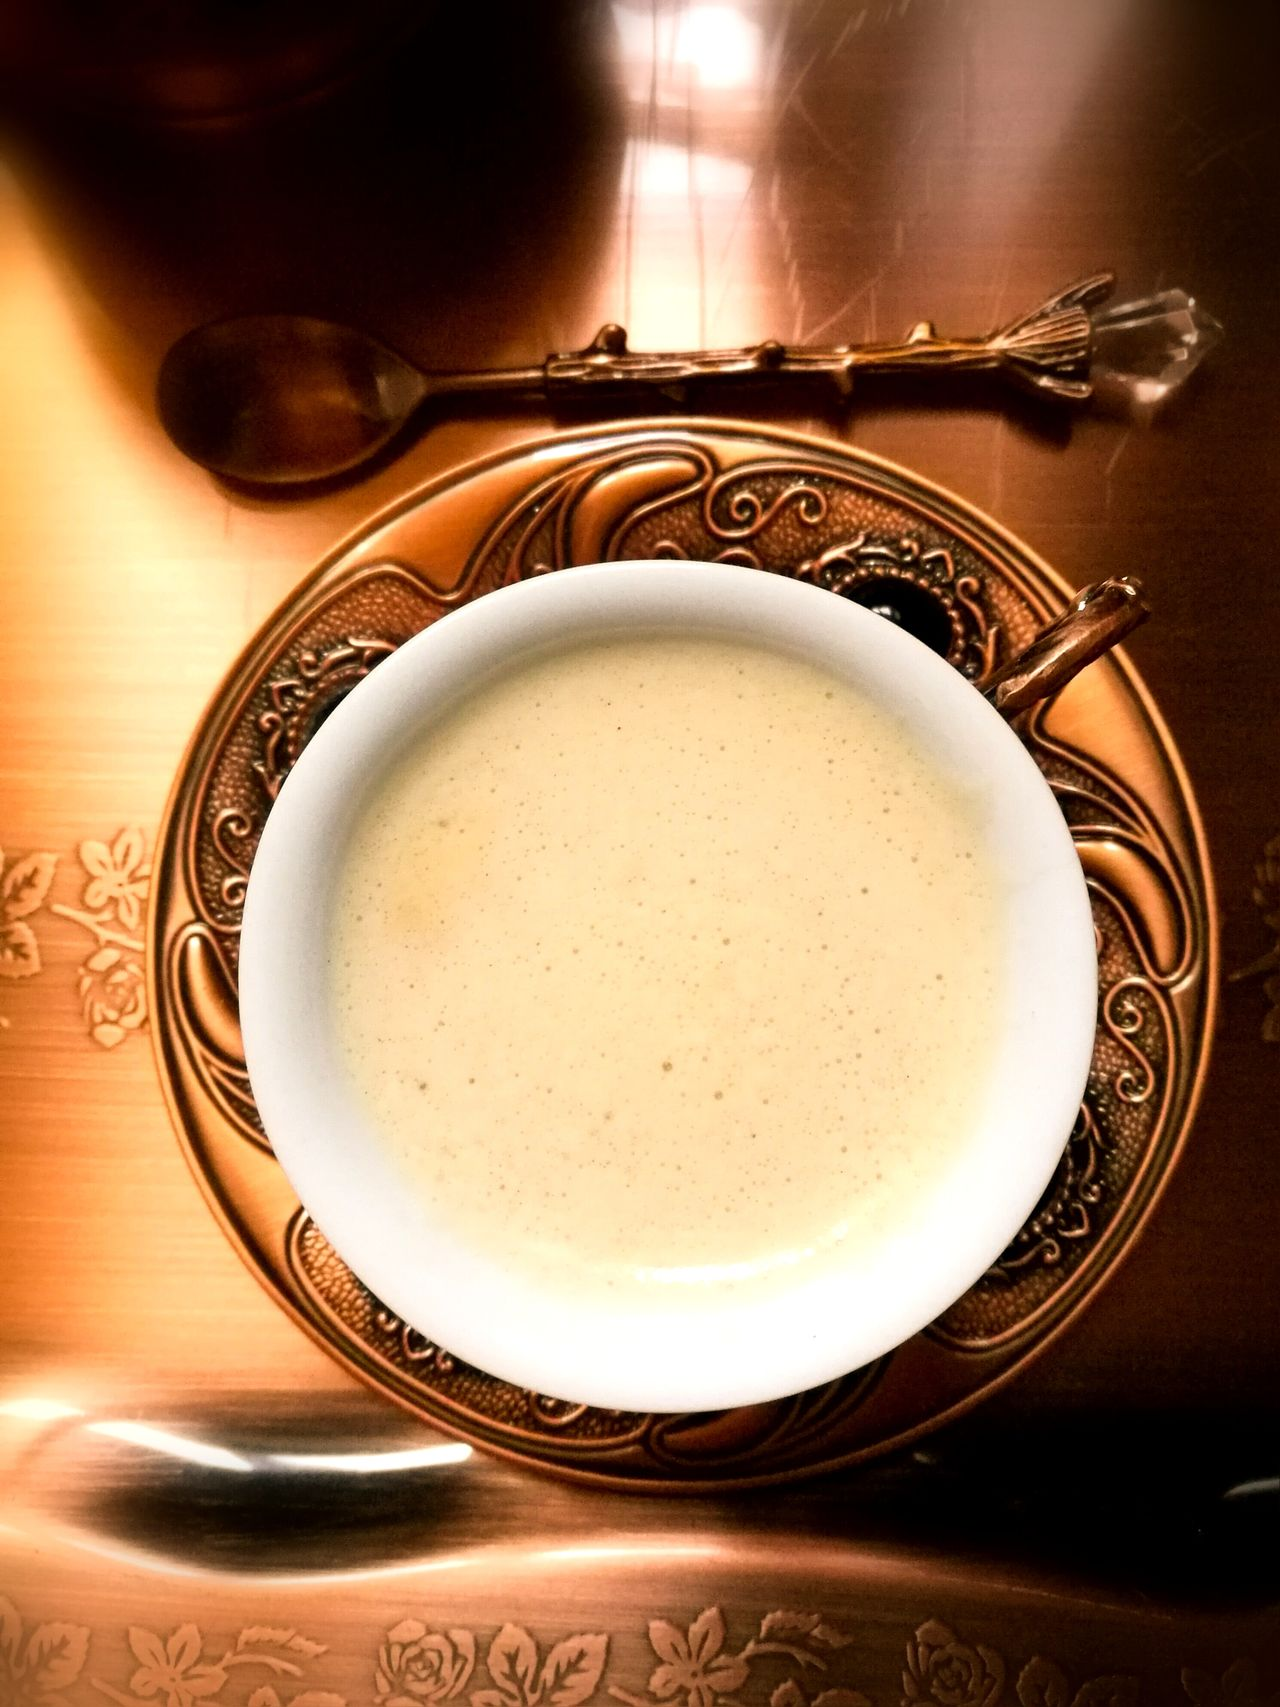 Pause café Arabic Coffee 😍😘 Arabic Coffe كرامة EyeEm Selects Indoors  Table No People Plate Food And Drink Close-up Gold Colored Food Drink